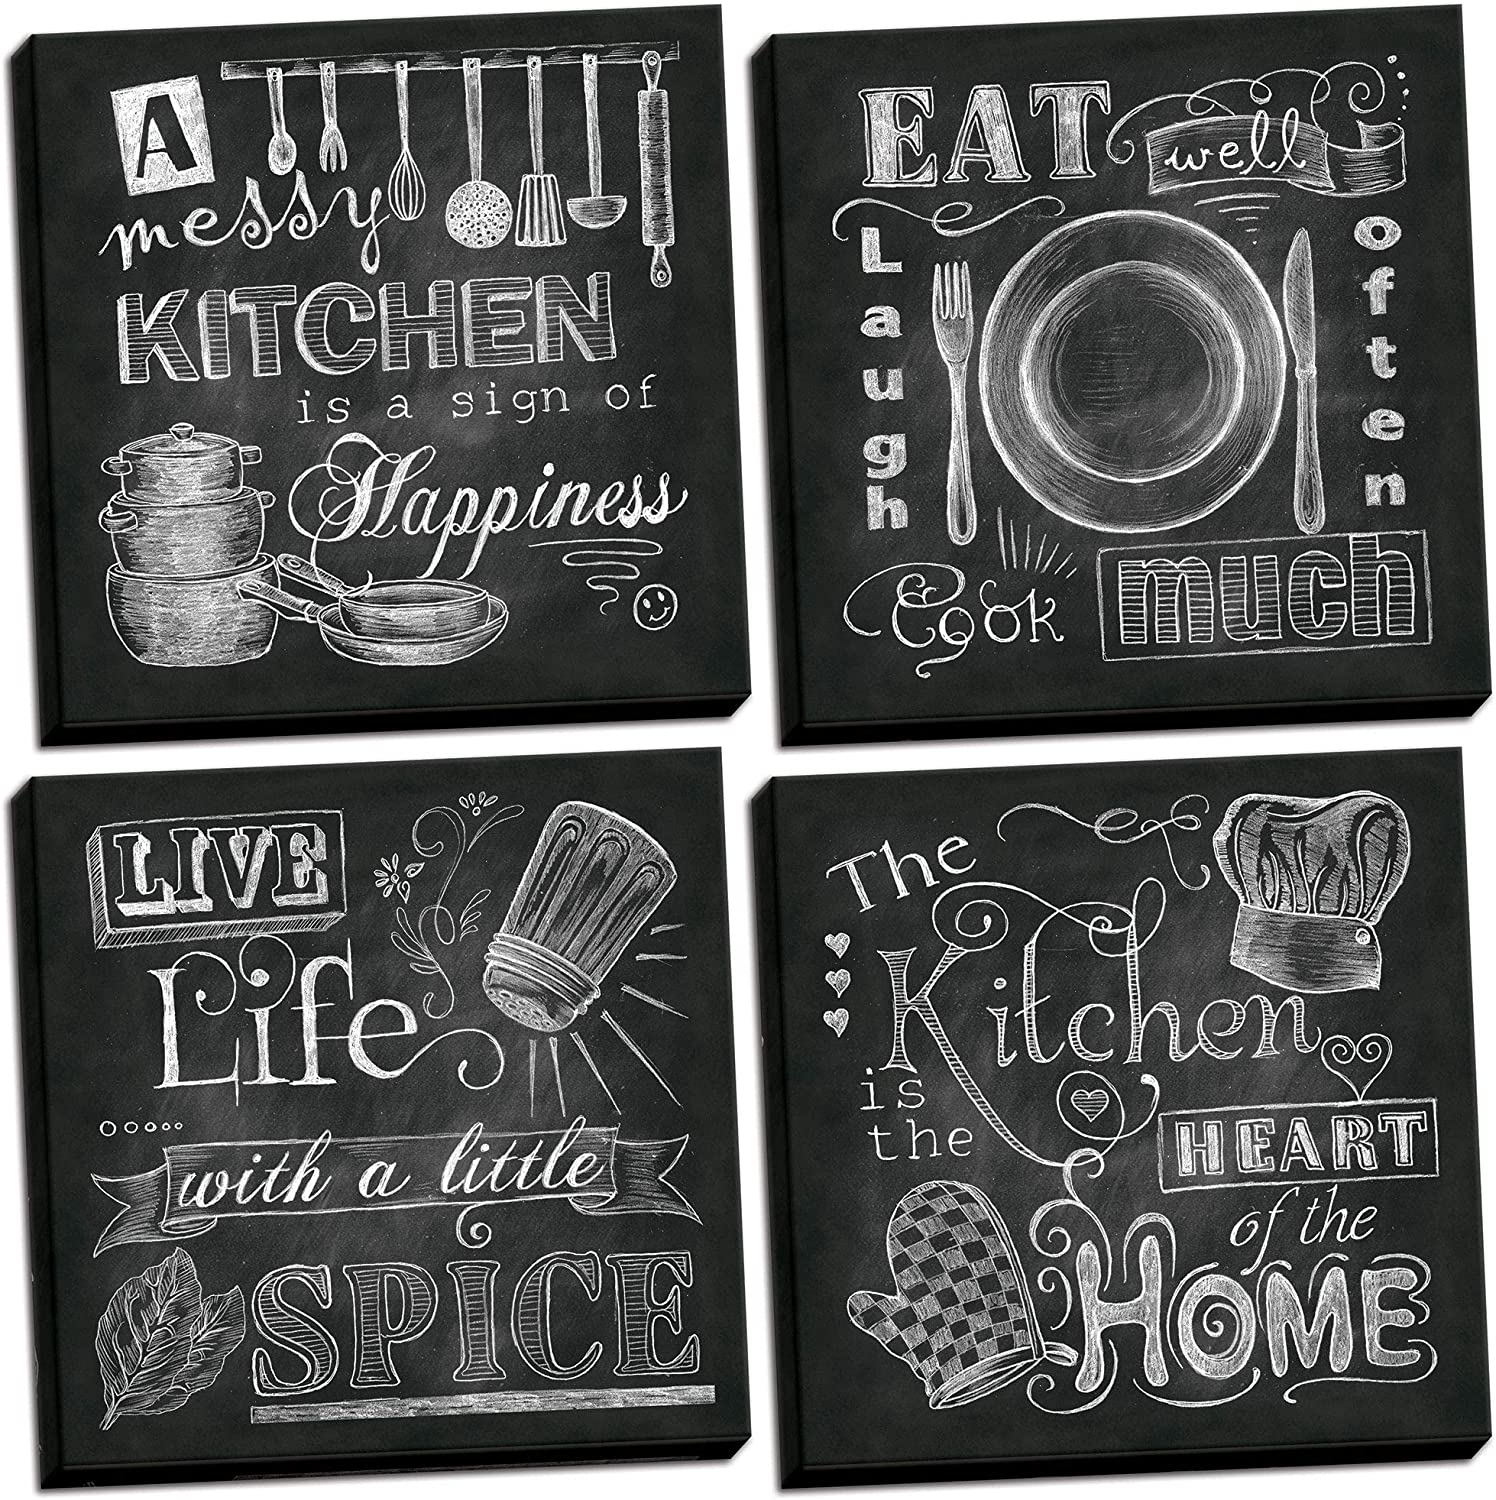 Amazon Com Beautiful Fun Chalkboard Kitchen Signs Messy Kitchen Heart Of The Home Spice Of Life And Cook Much Four 12x12in Stretched Canvases Ready To Hang Home Kitchen